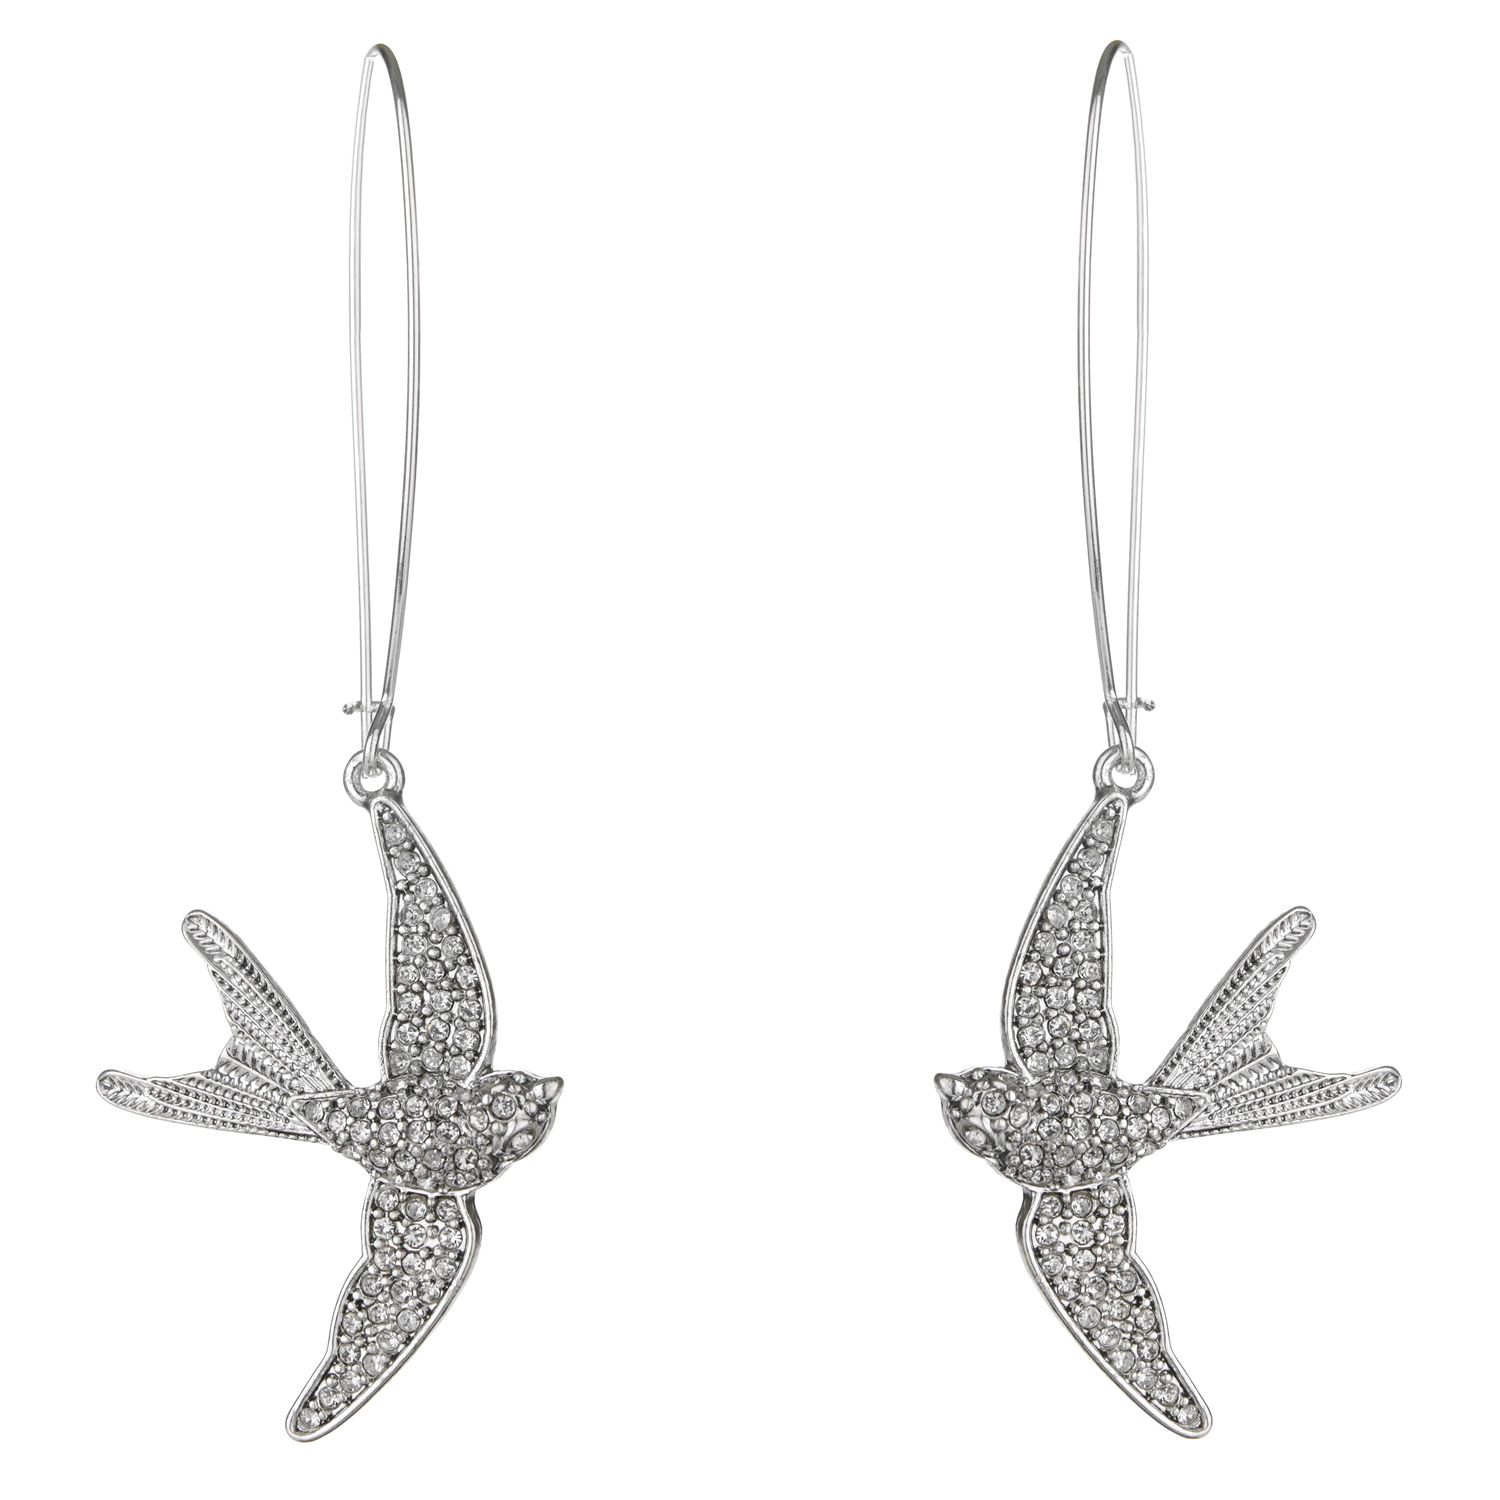 Pave bird earrings